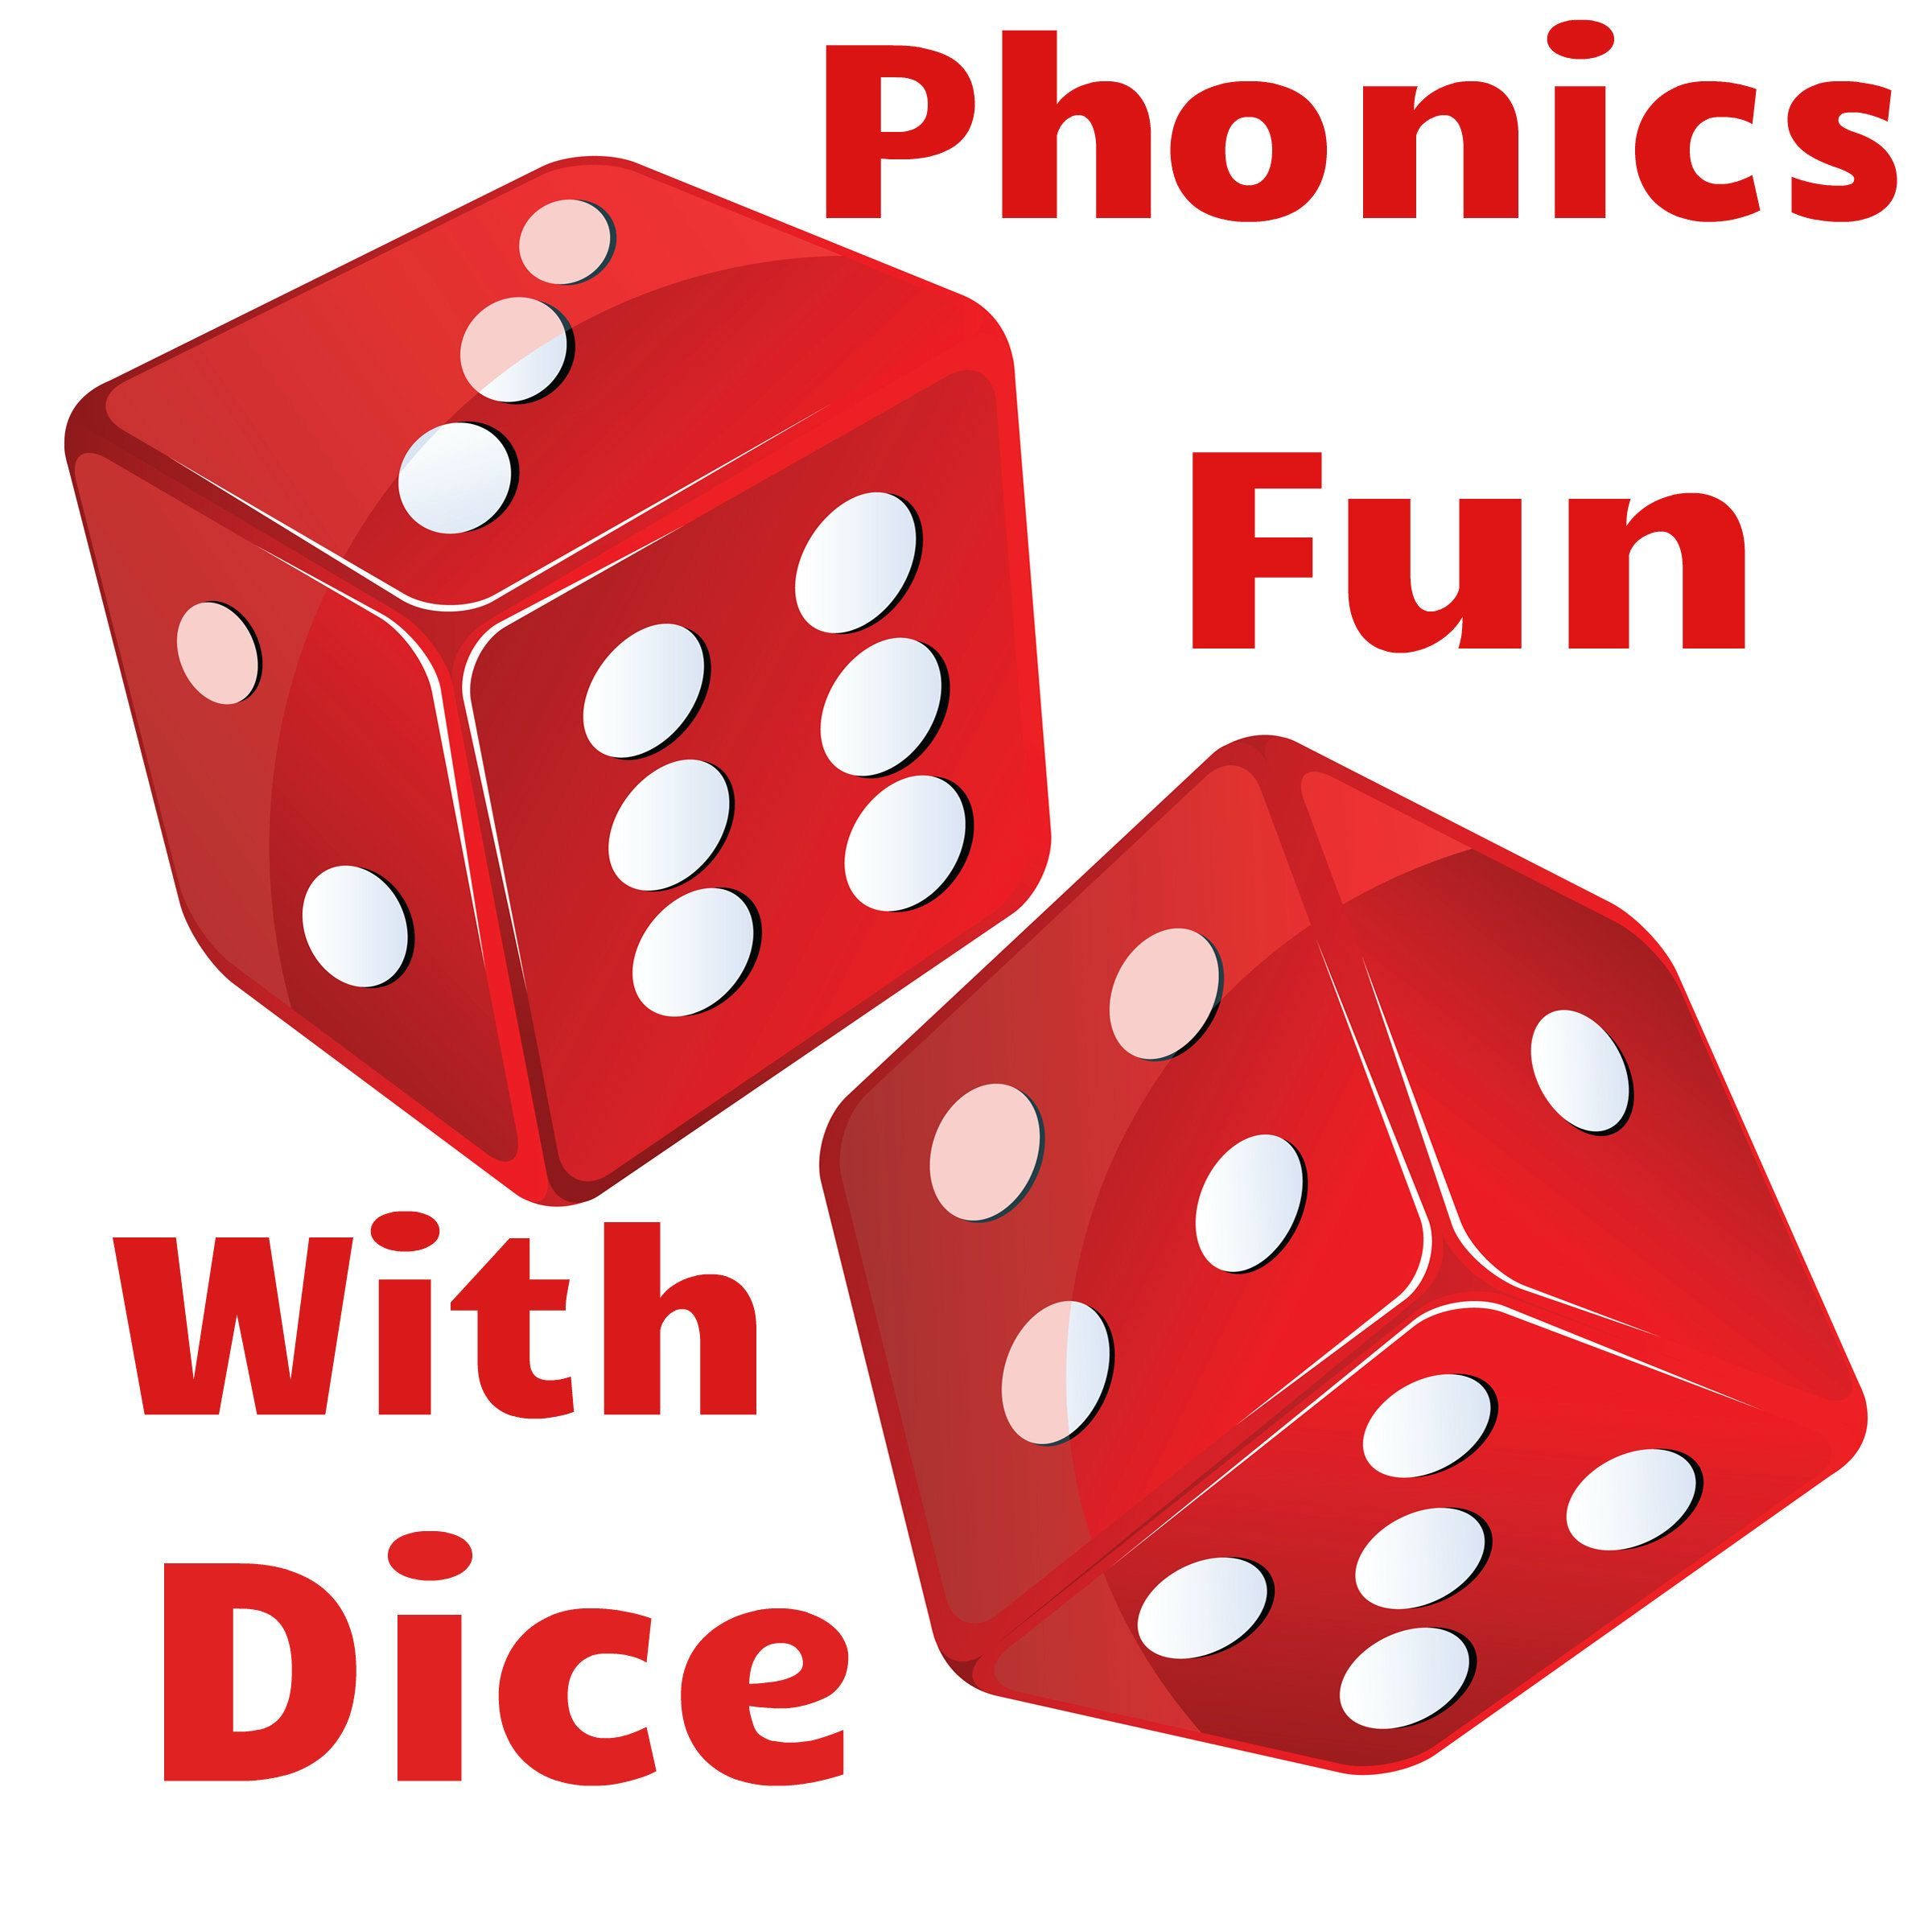 Phonics Fun With Interactive Dice Add Your Own Words To The Faces And Roll Free Resource